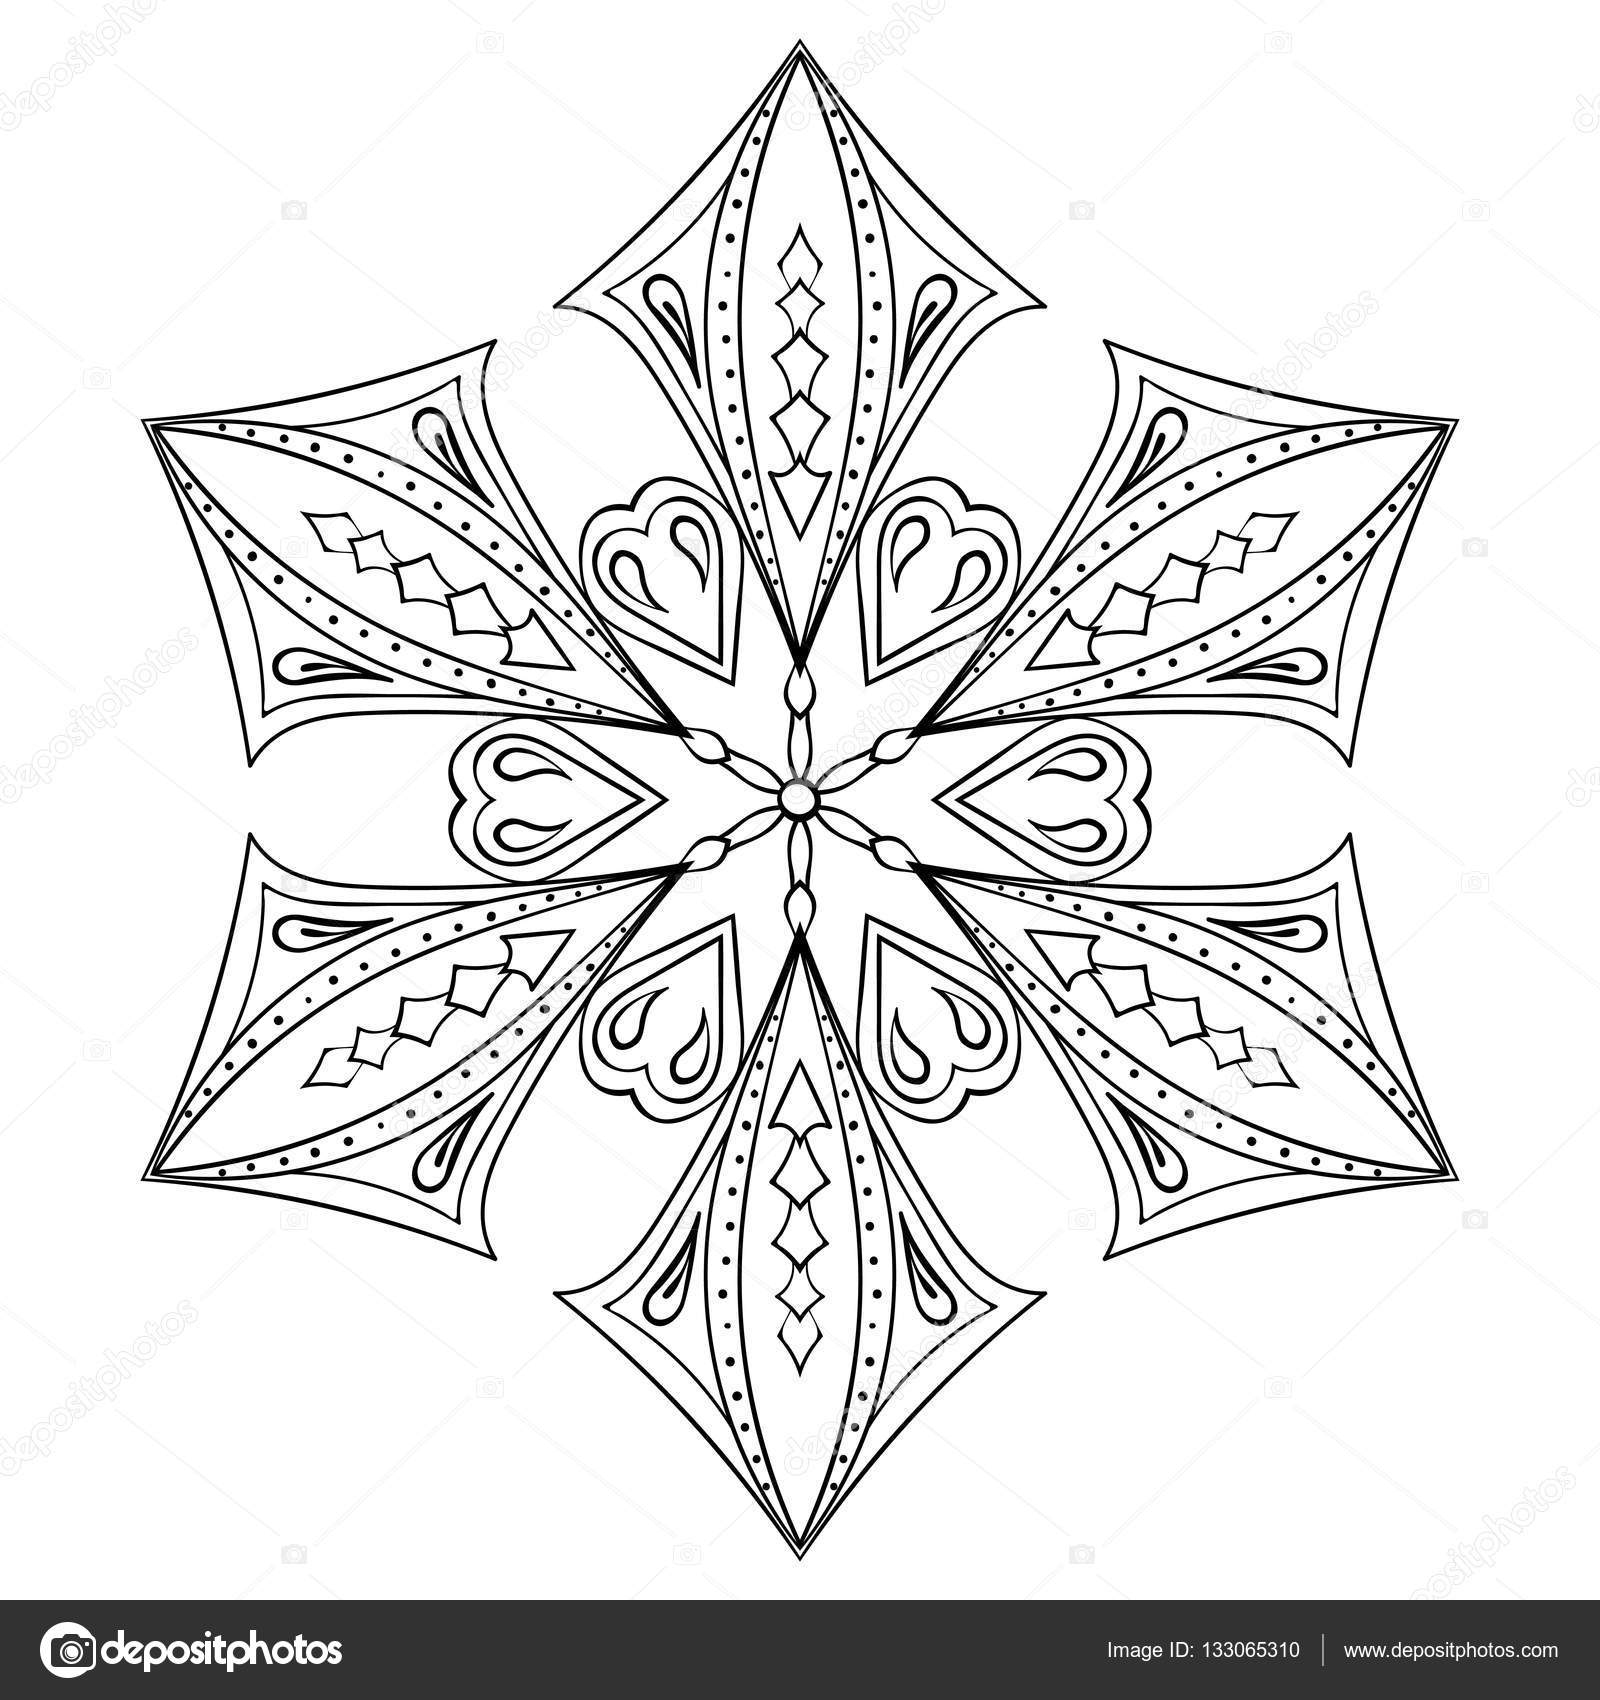 Christmas Tree Zentangle Coloring Page by Pamela Kennedy | TpT | 1700x1600